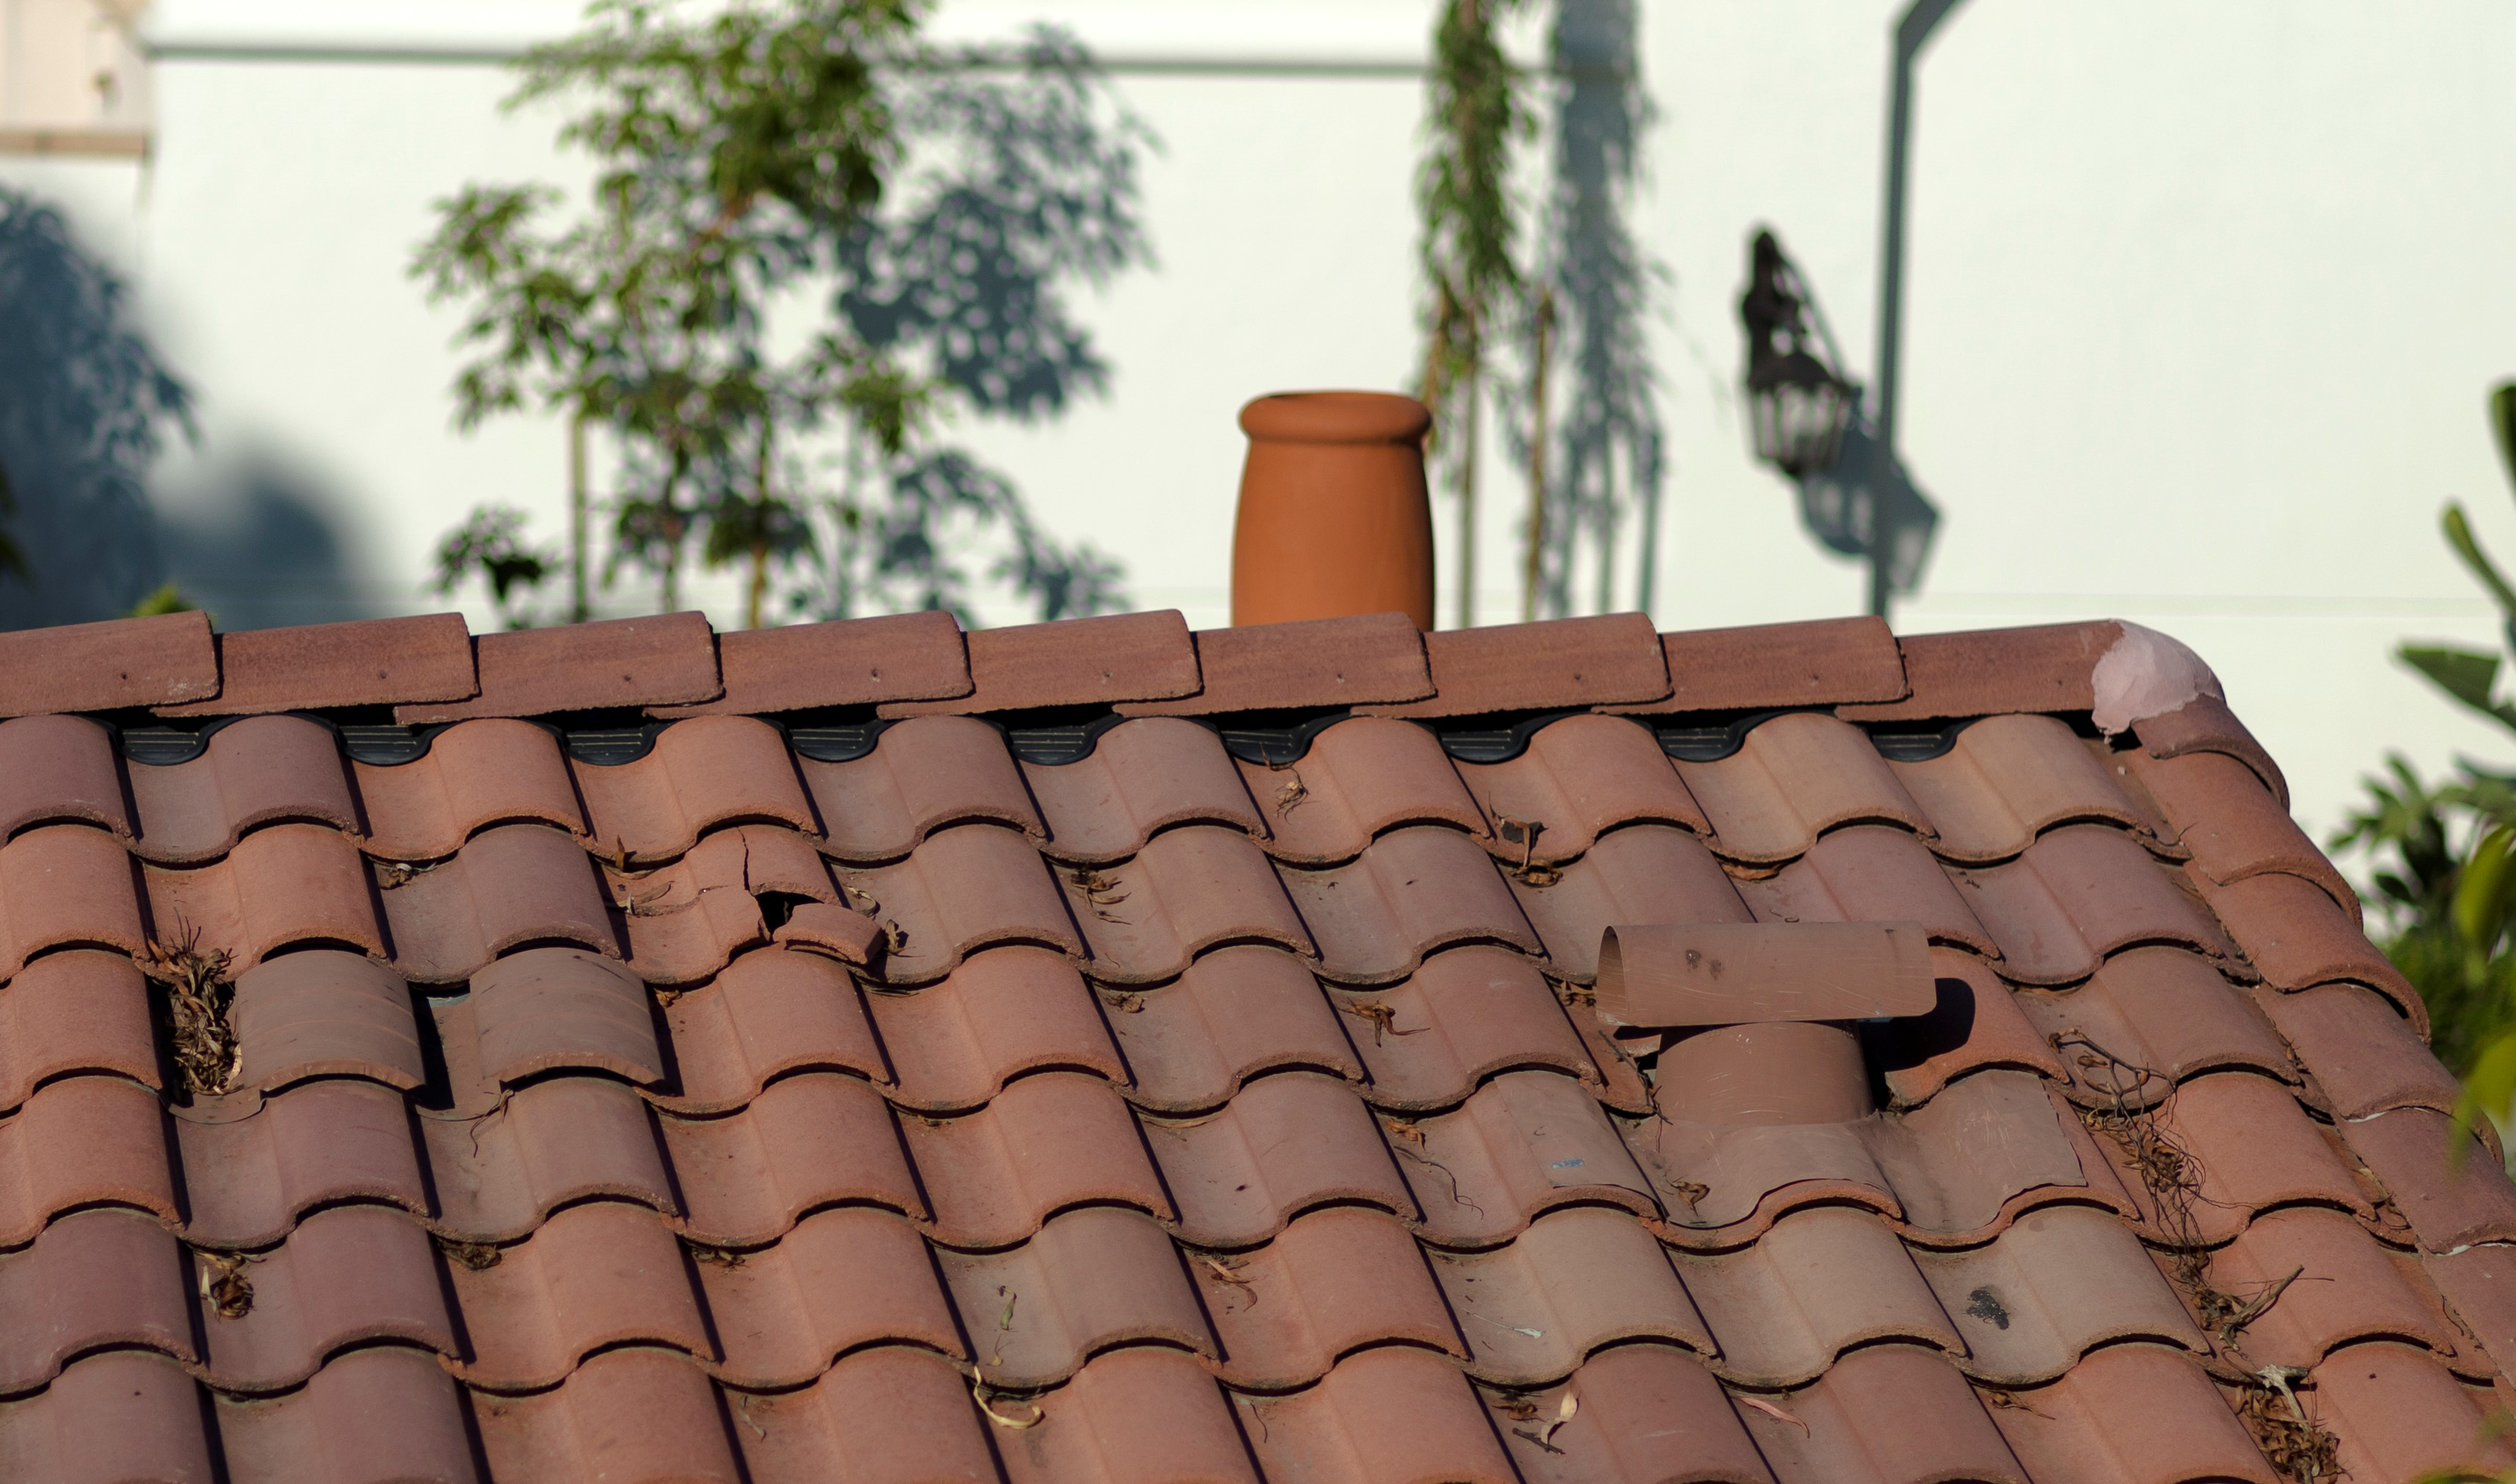 How To Extend The Life Of Your Concrete Tile Roof Eagle Roofing